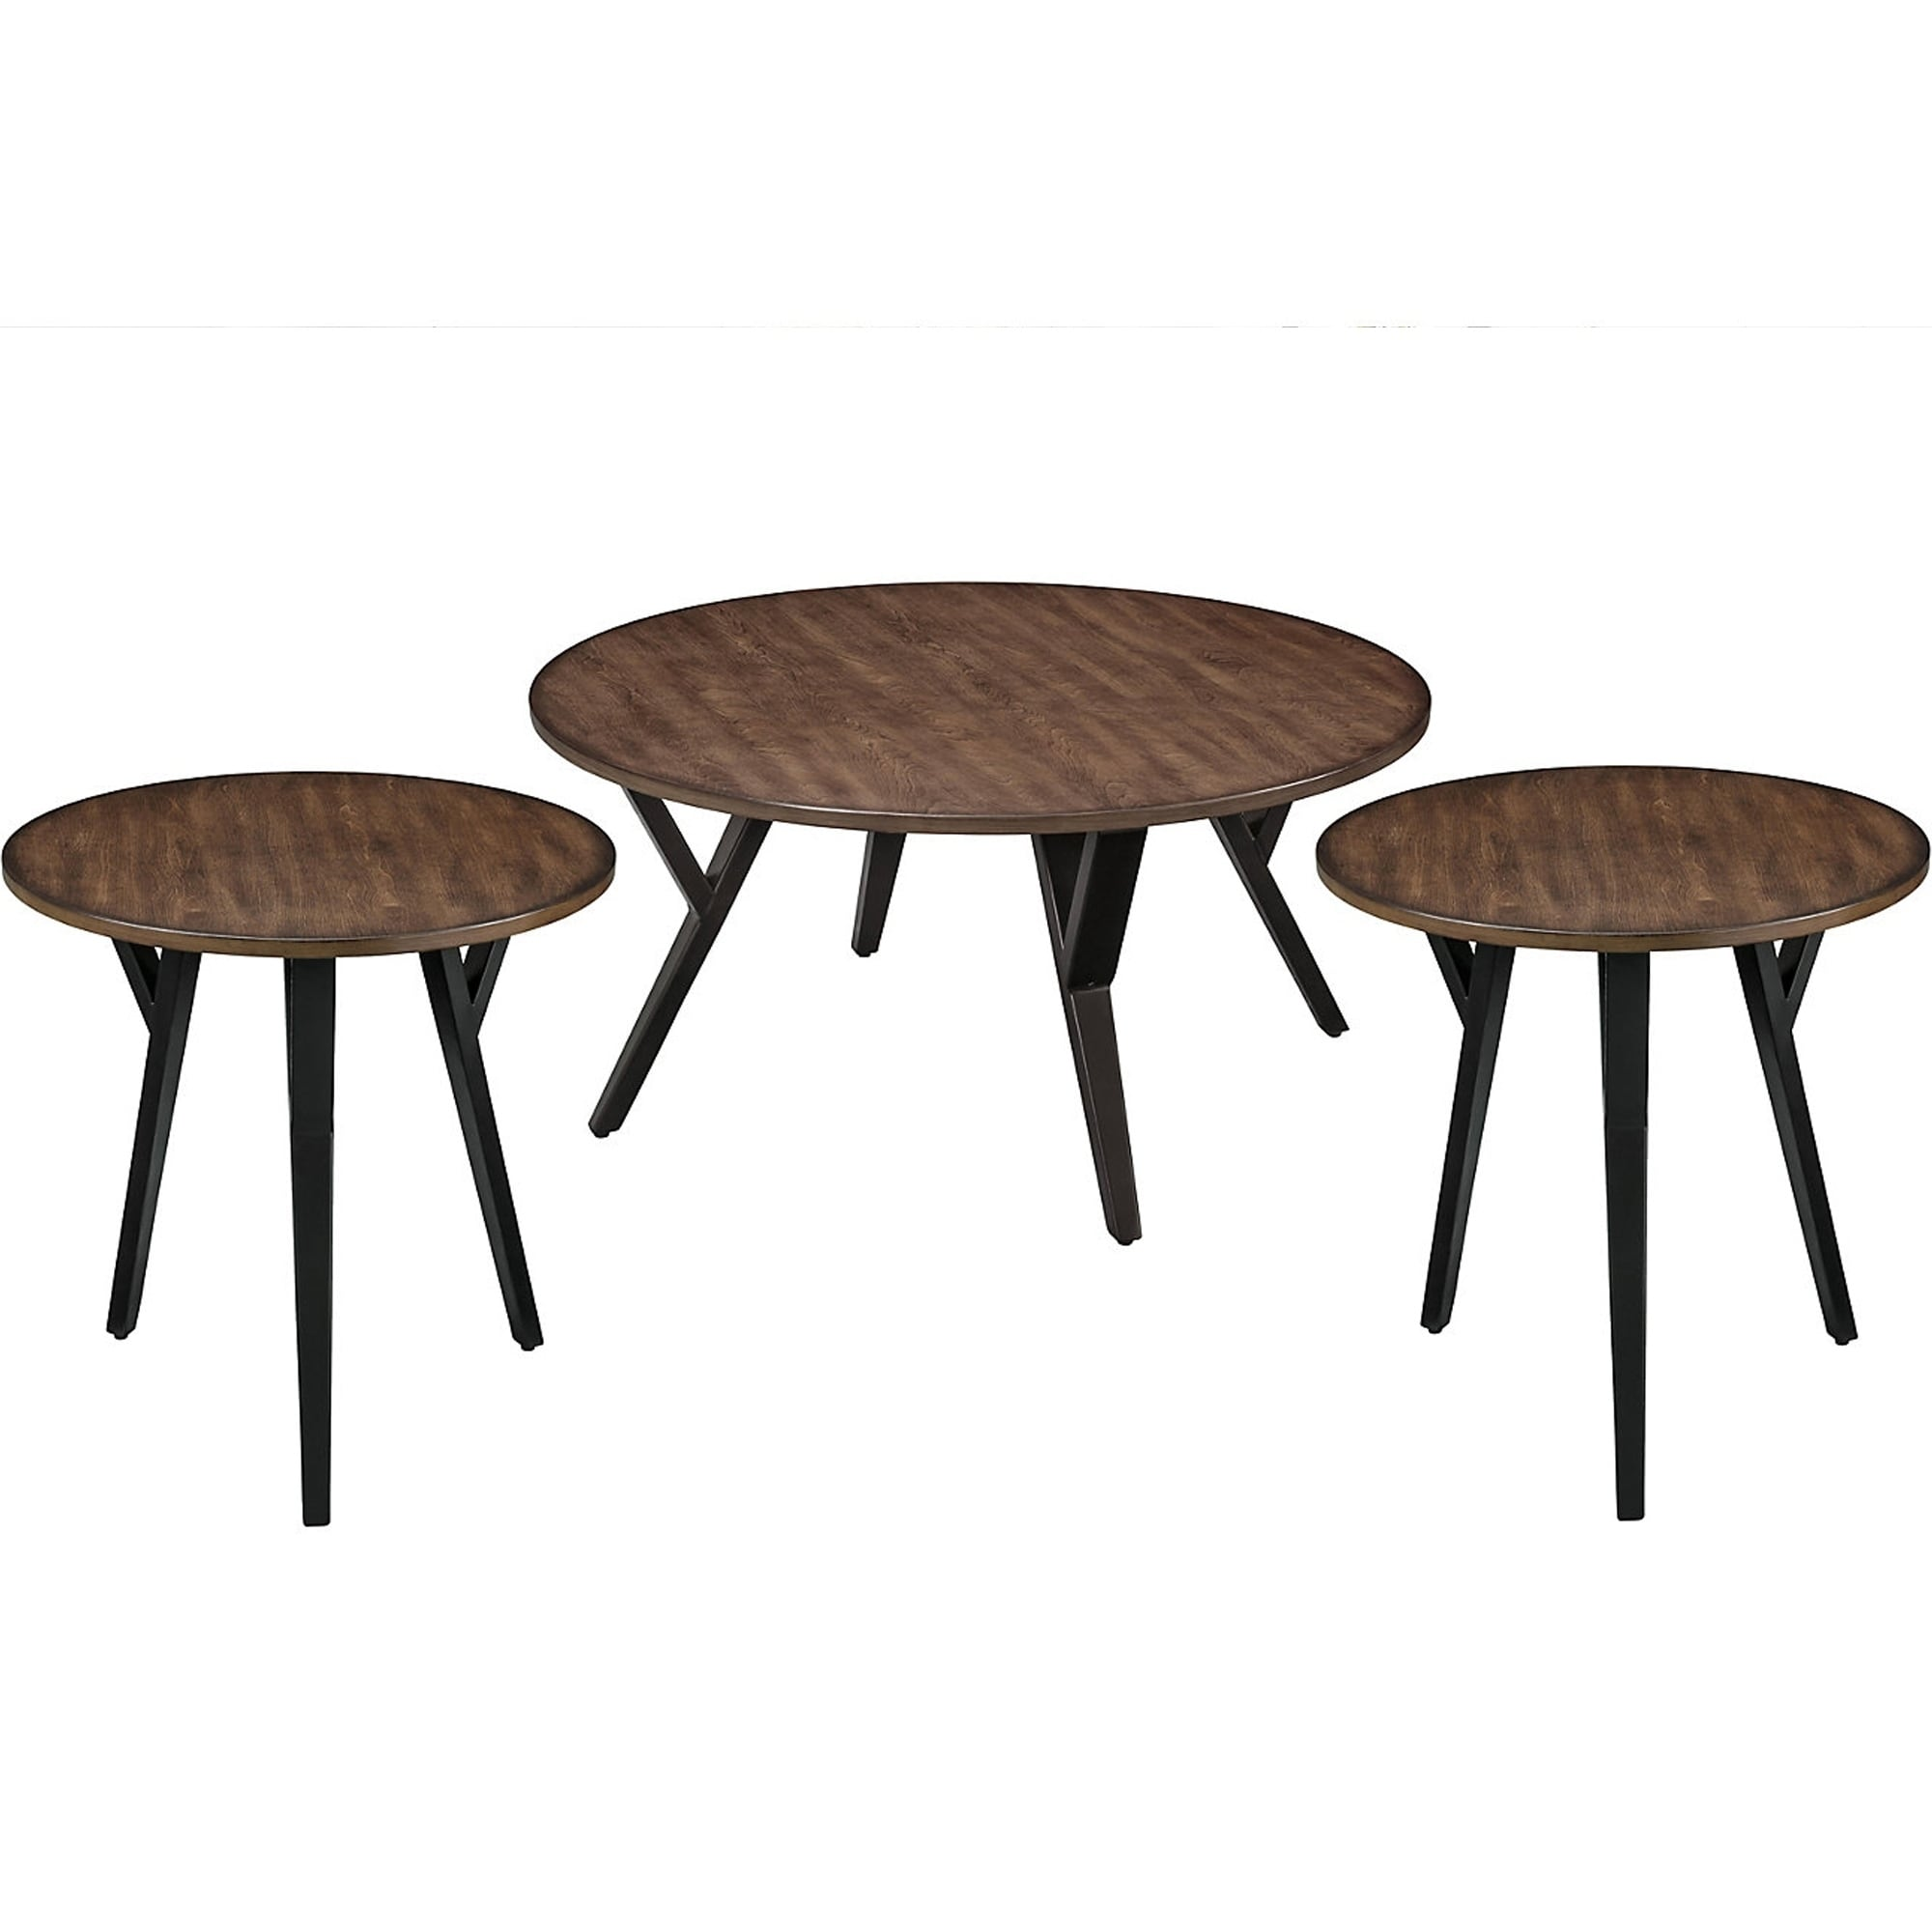 Picture of: Round Wood And Metal Coffee End Table Set Brown And Black Pack Of 3 Overstock 25768751